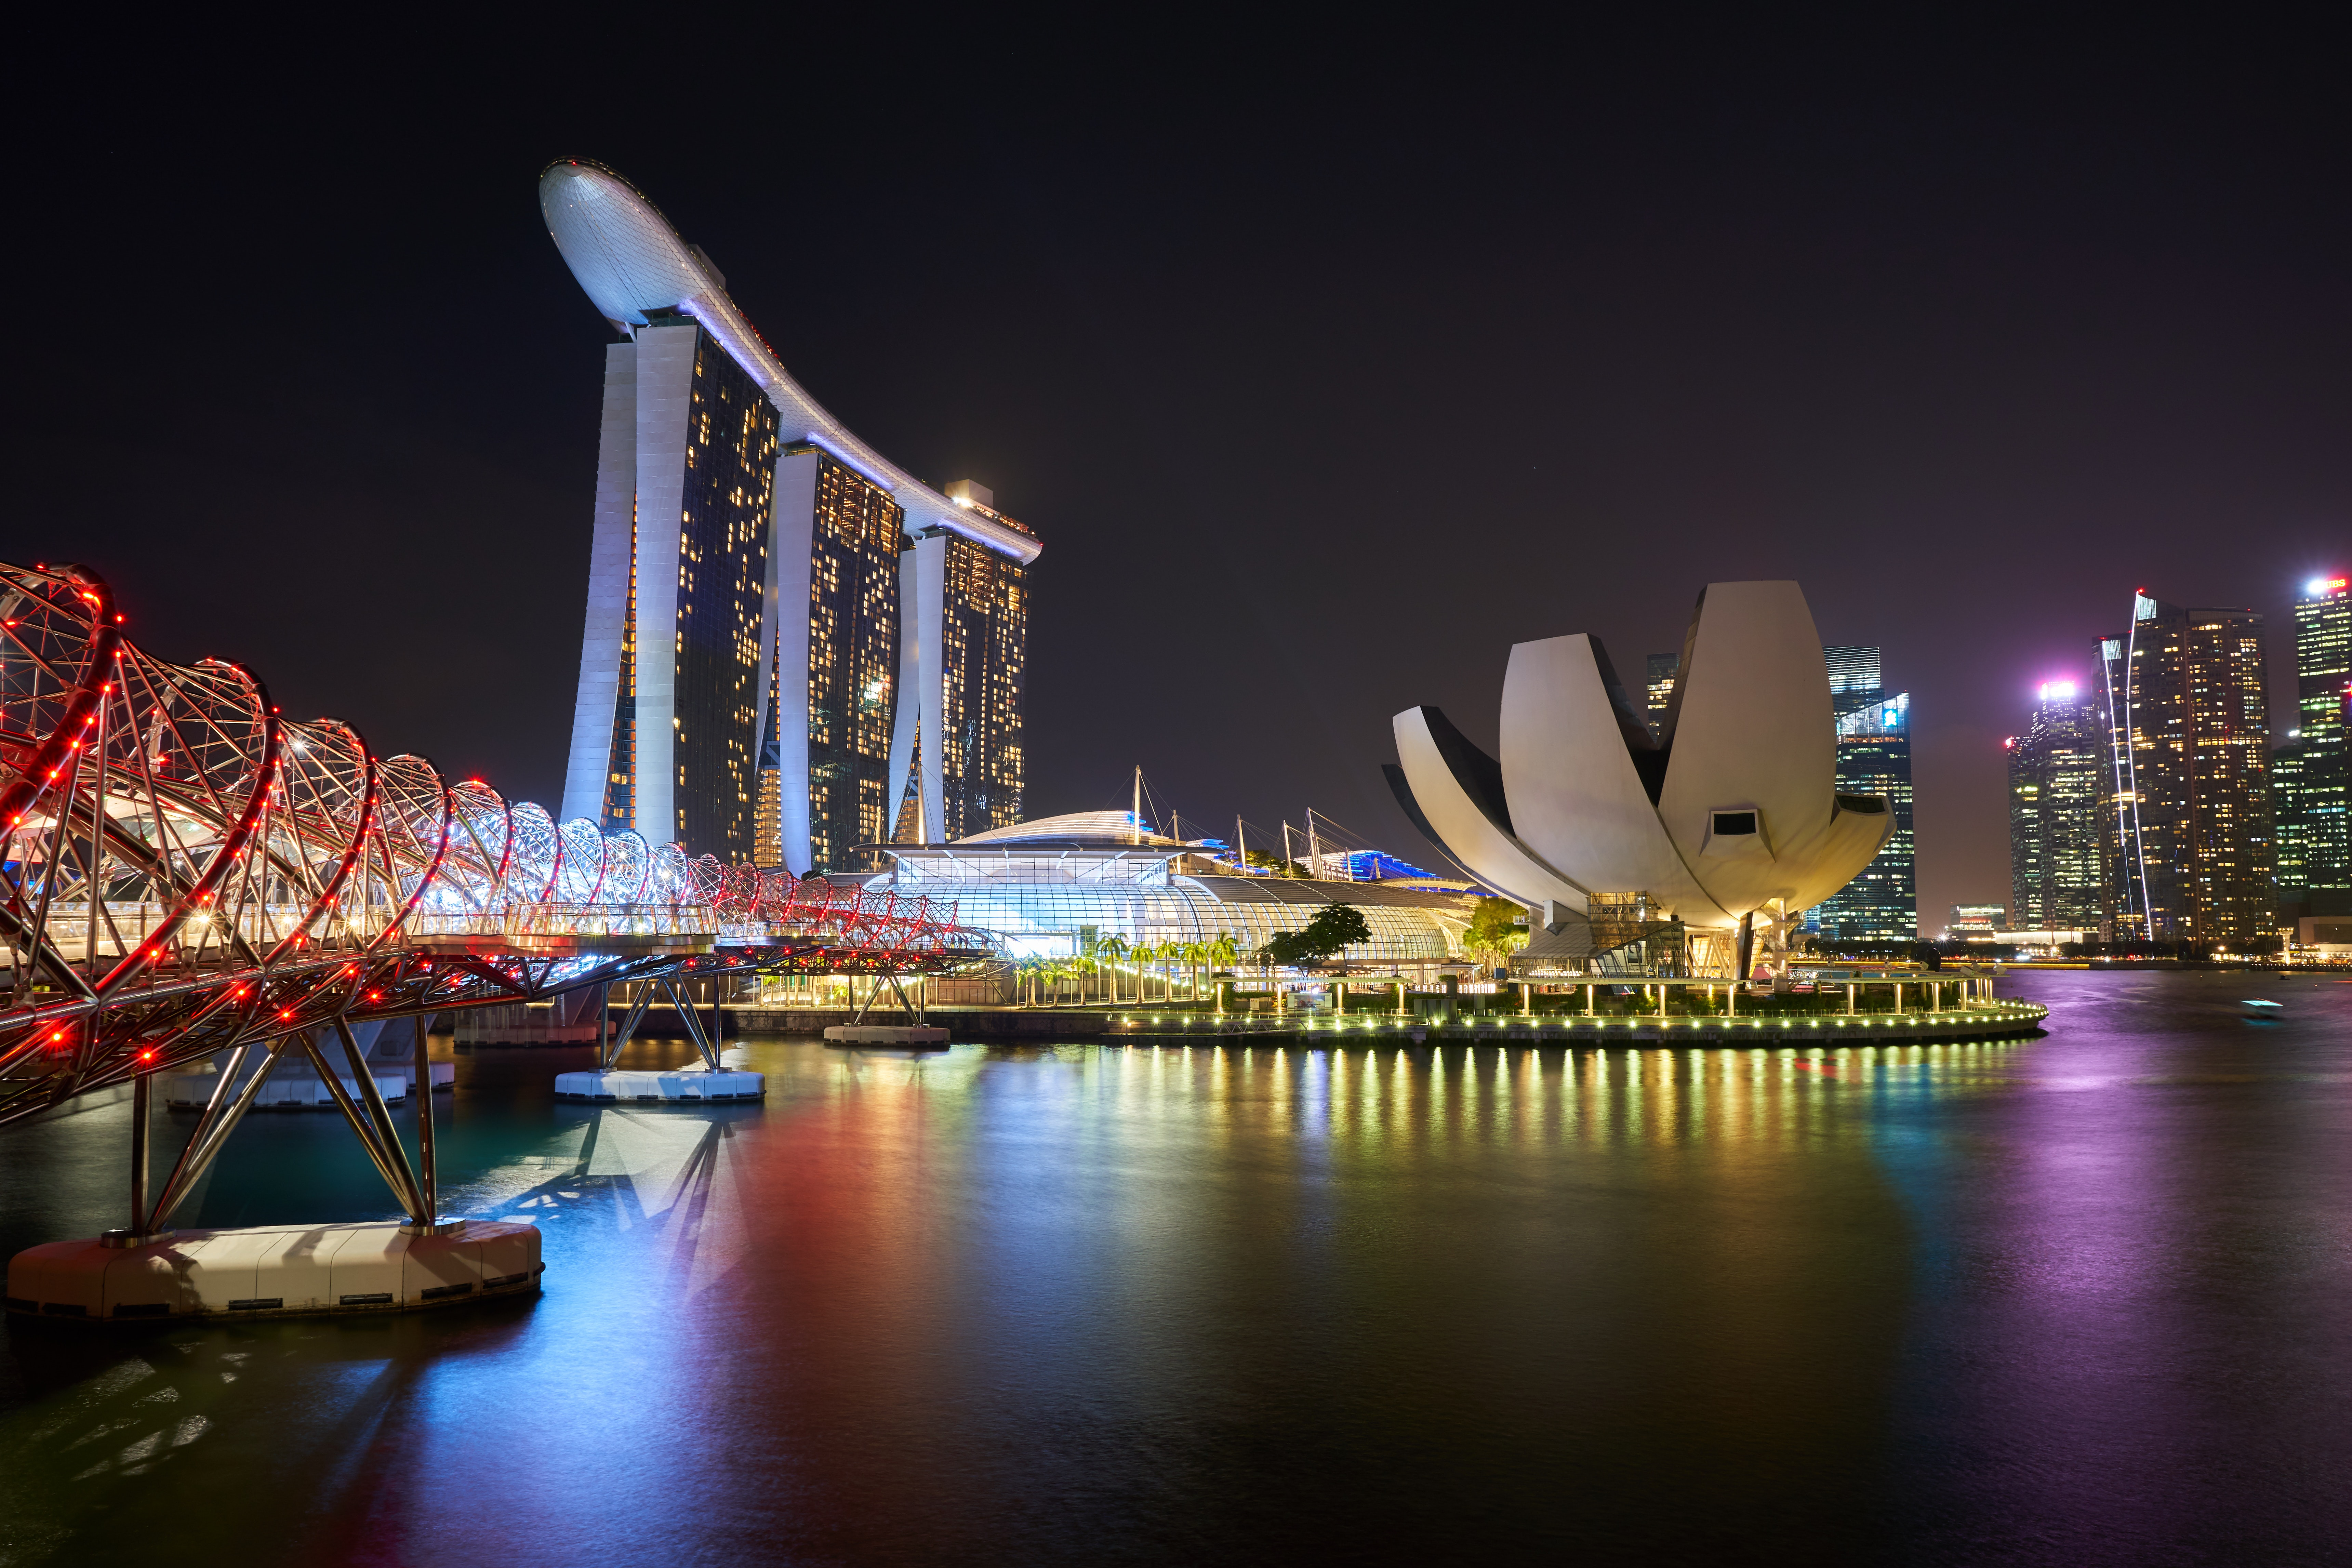 gardens-by-the-bay-singapore-1842332